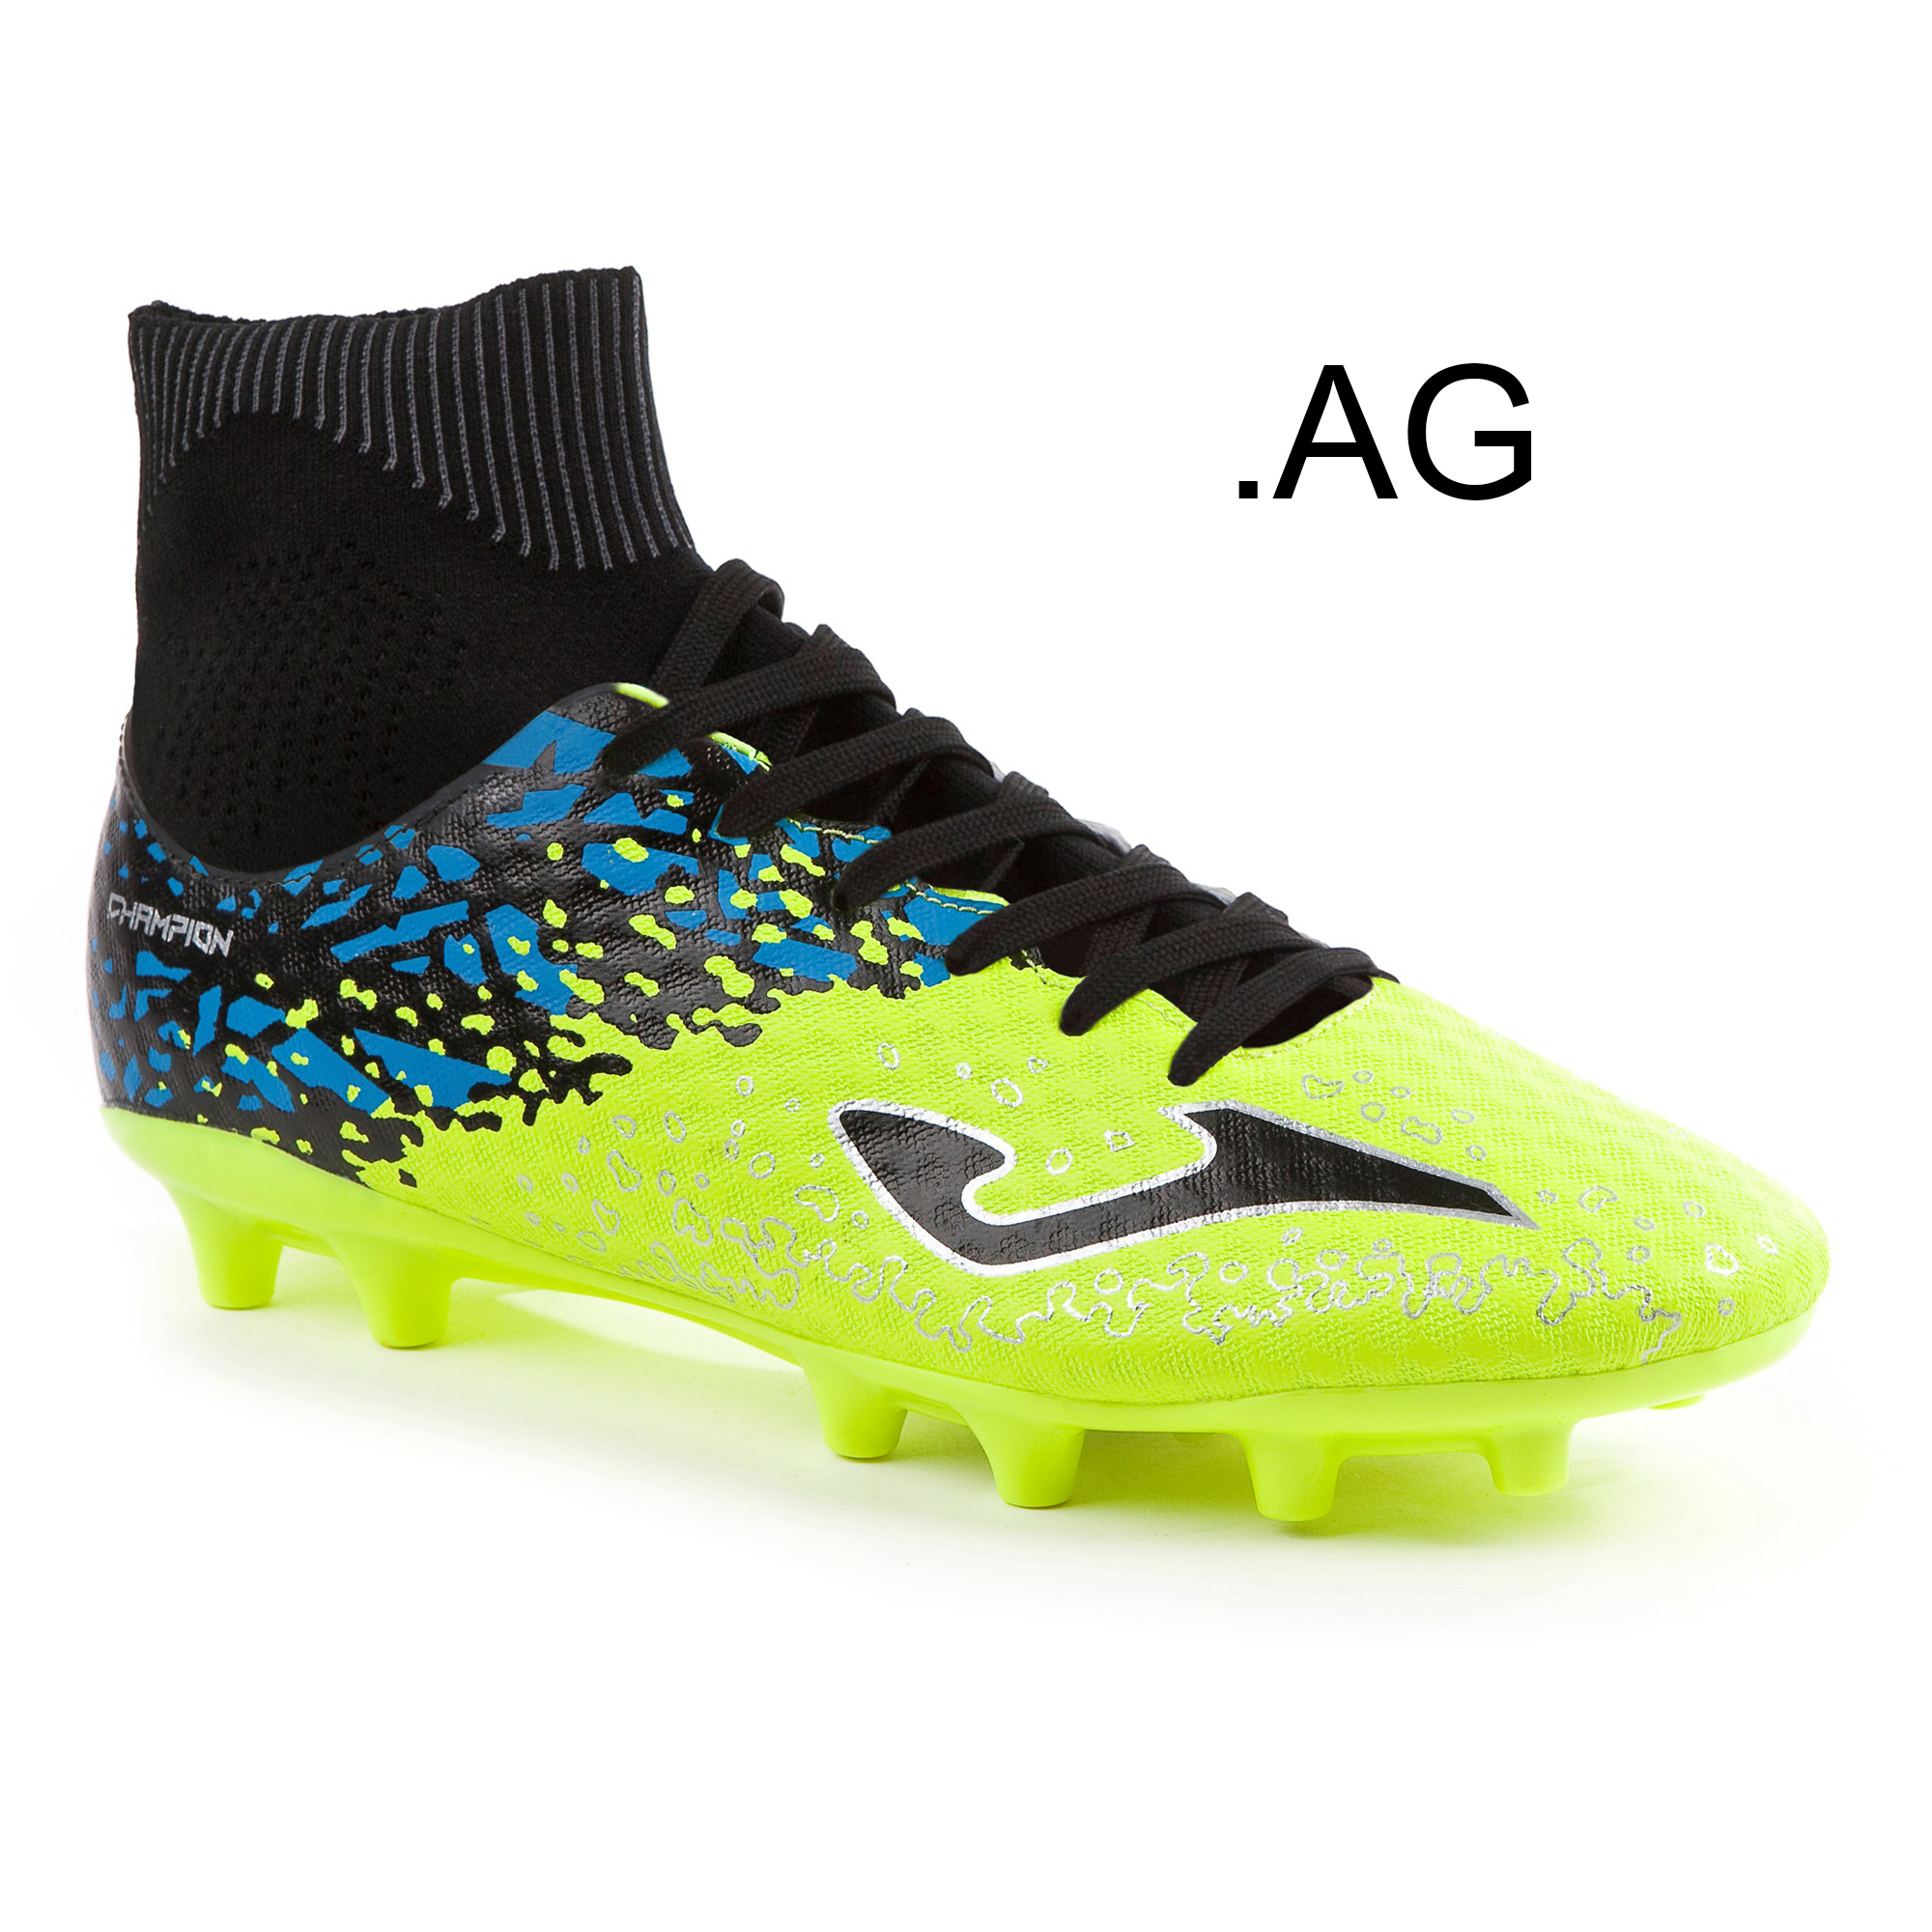 e1ad947ffee Joma Champion 711 Fluor FG AG Soccer Cleat   Team Kits and Soccer United